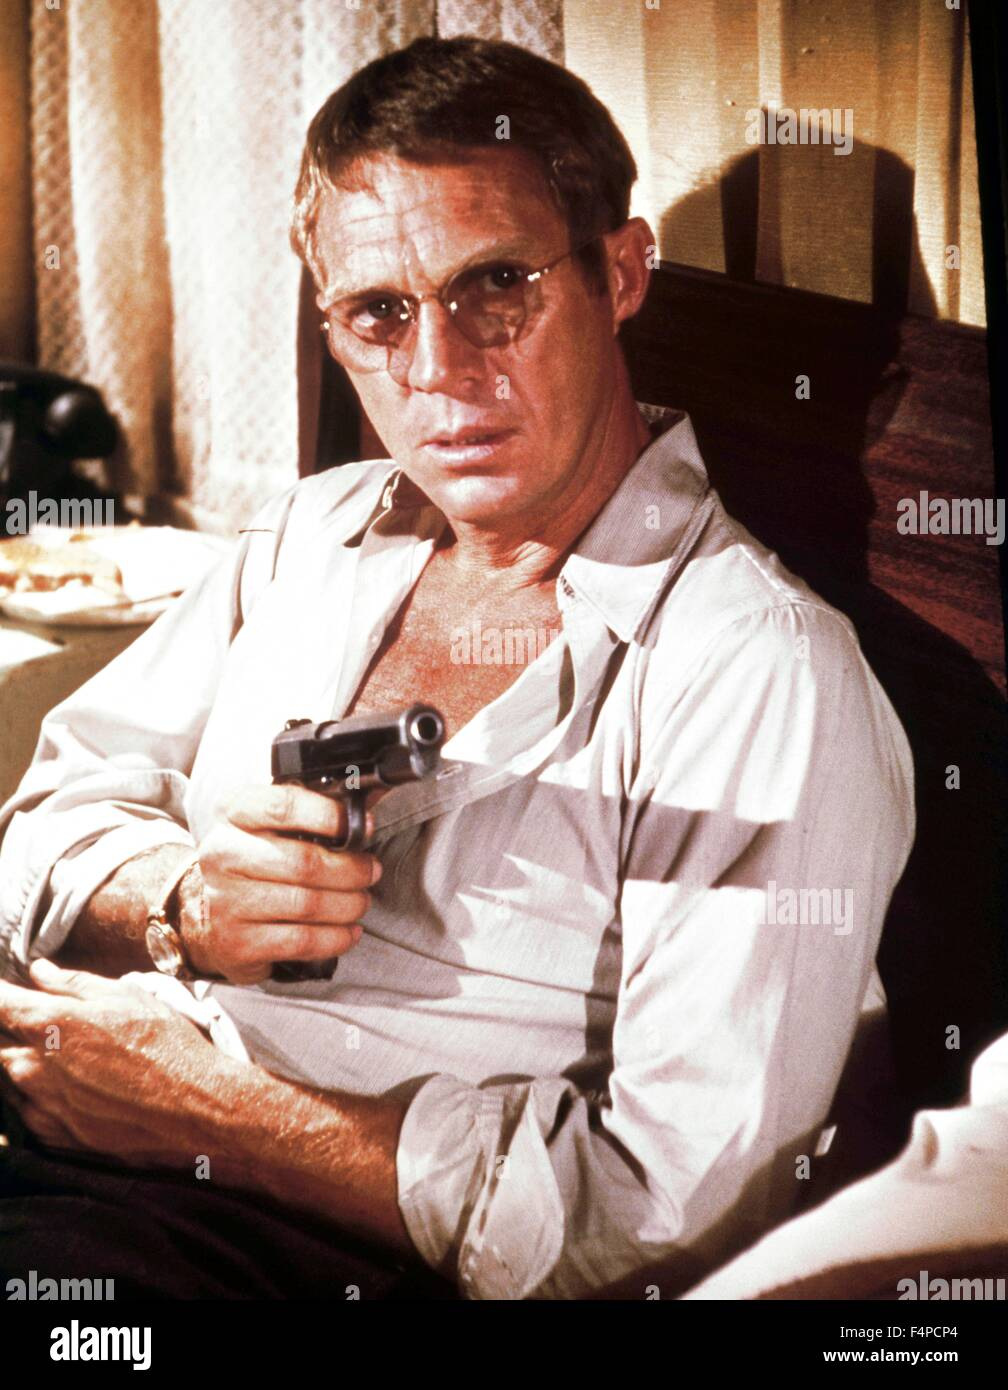 Steve McQueen / The Getaway 1972 réalisé par Sam Peckinpah Photo Stock